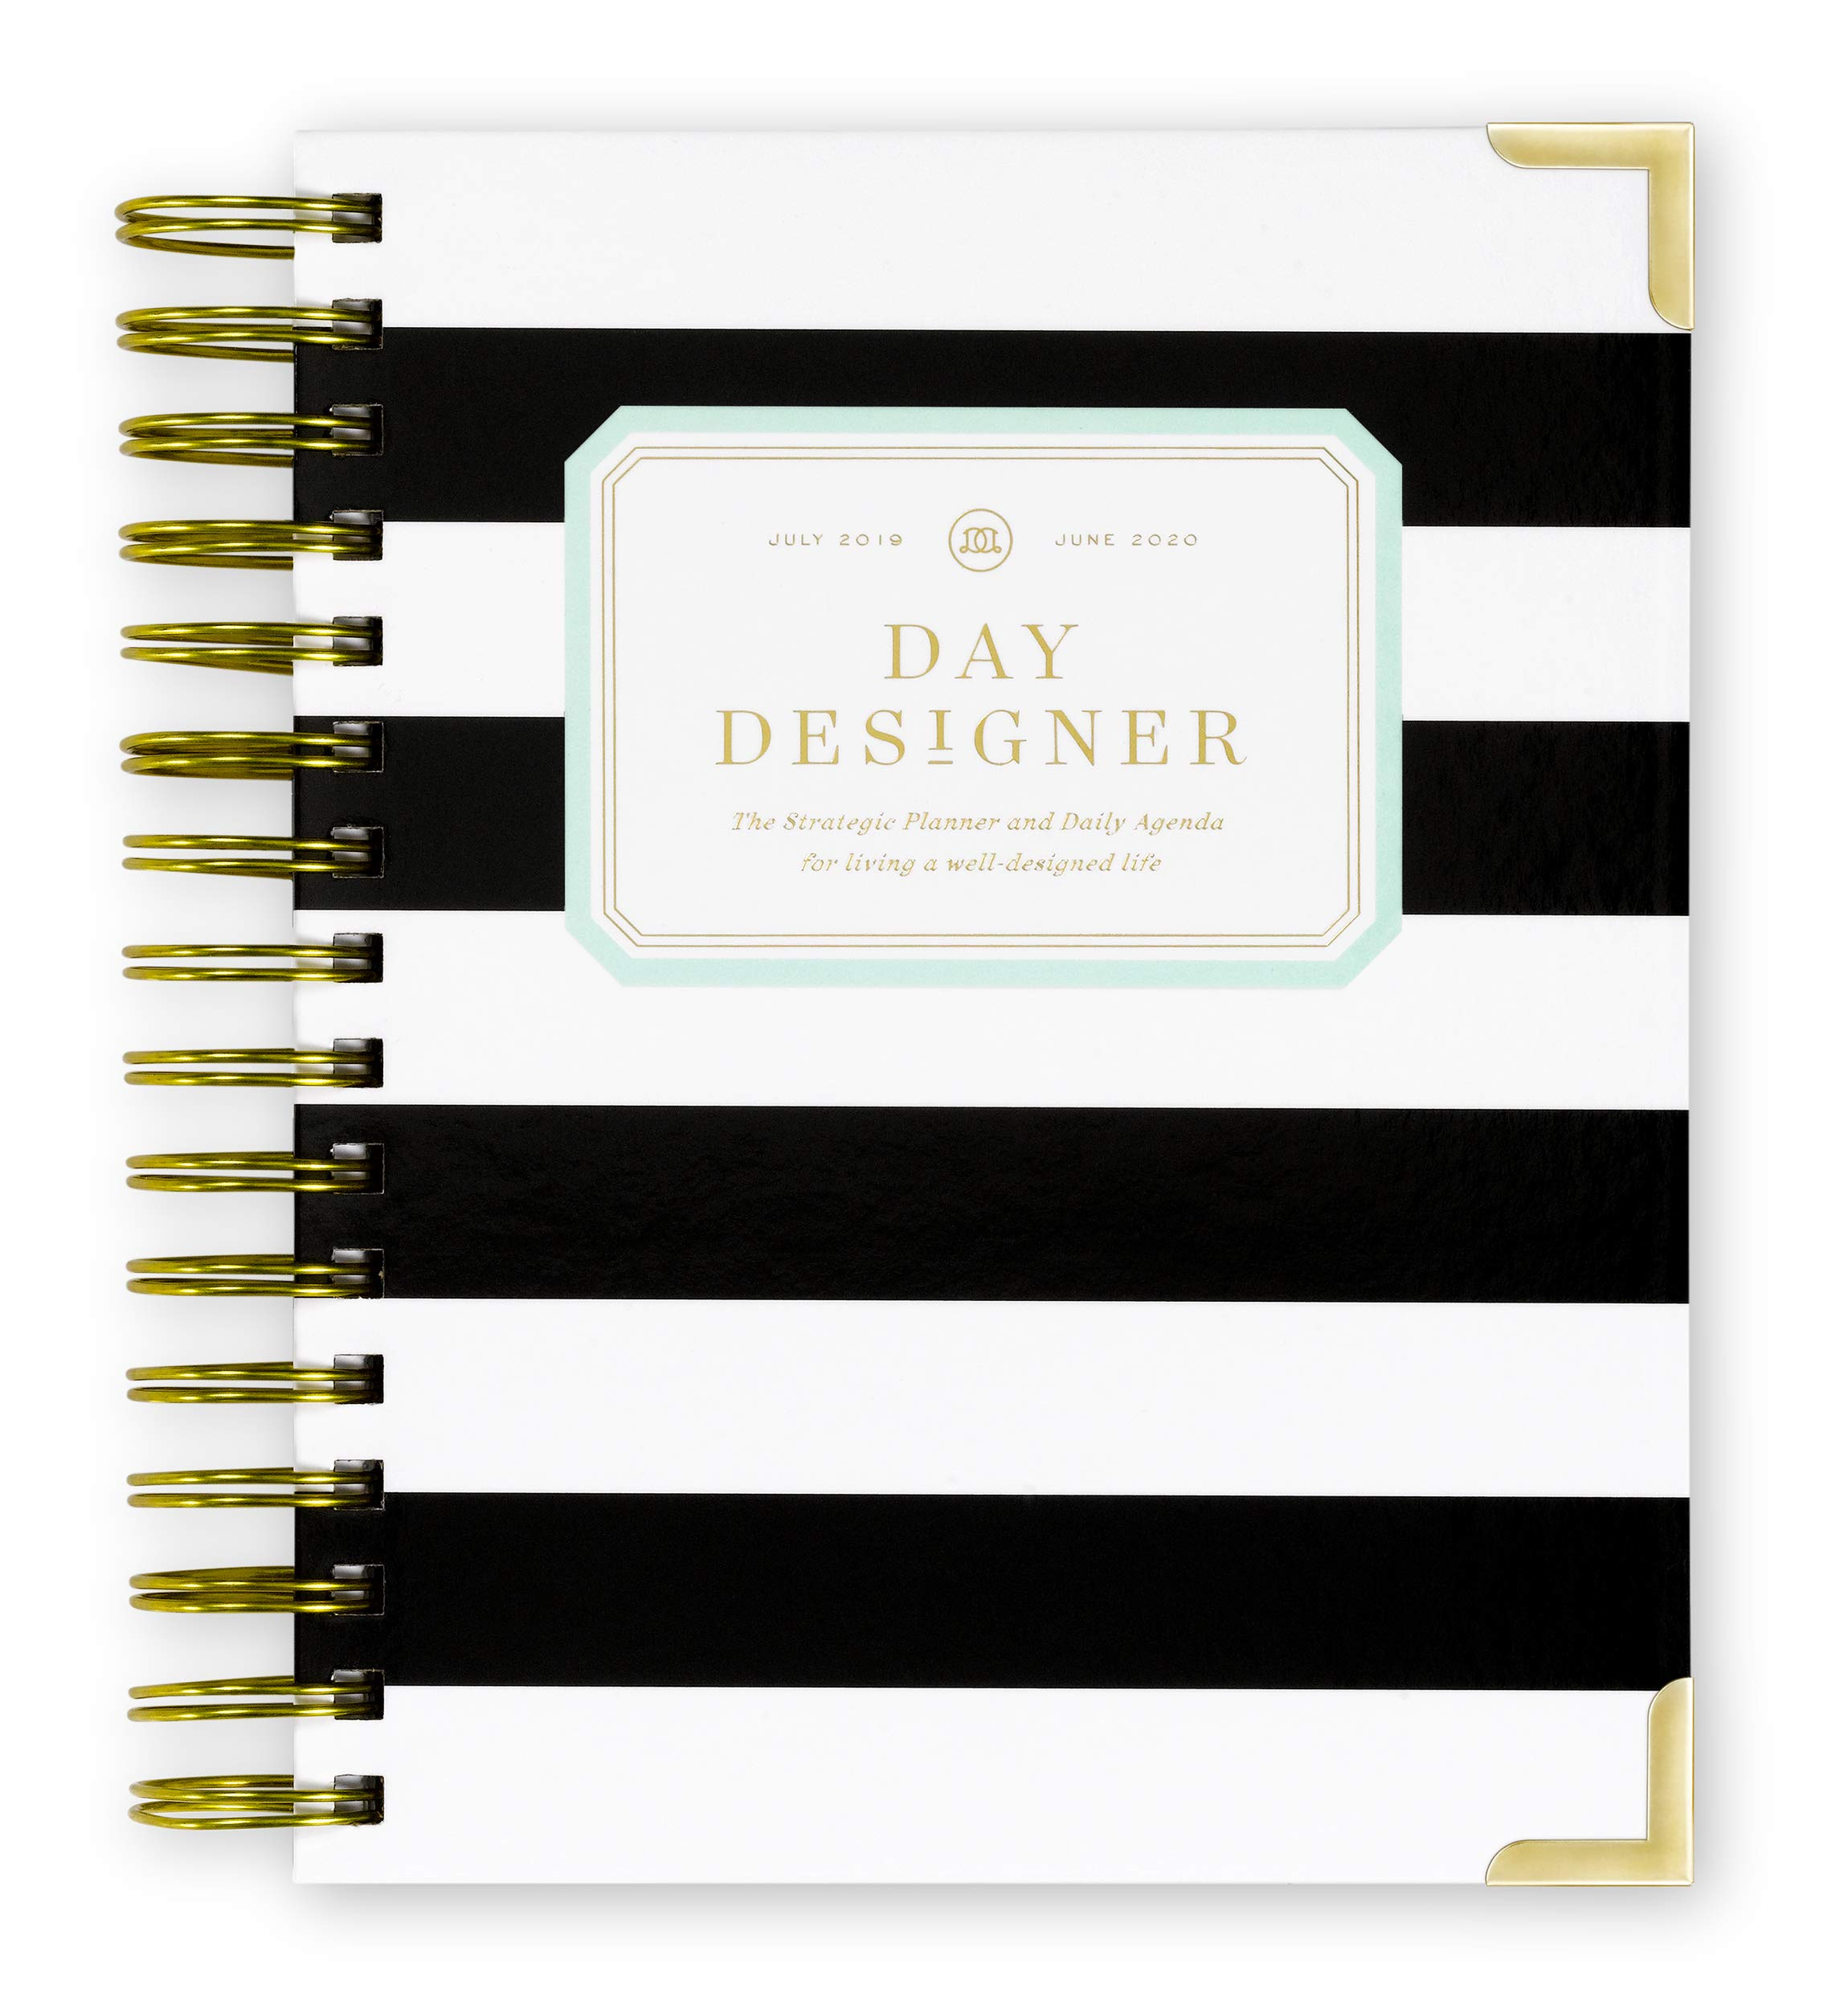 Day Designer 2019-2020 Mini Daily Life Planner and Agenda, Hardcover, Twin-Wire Binding, 6.625'' x 8.3'', Black Stripe